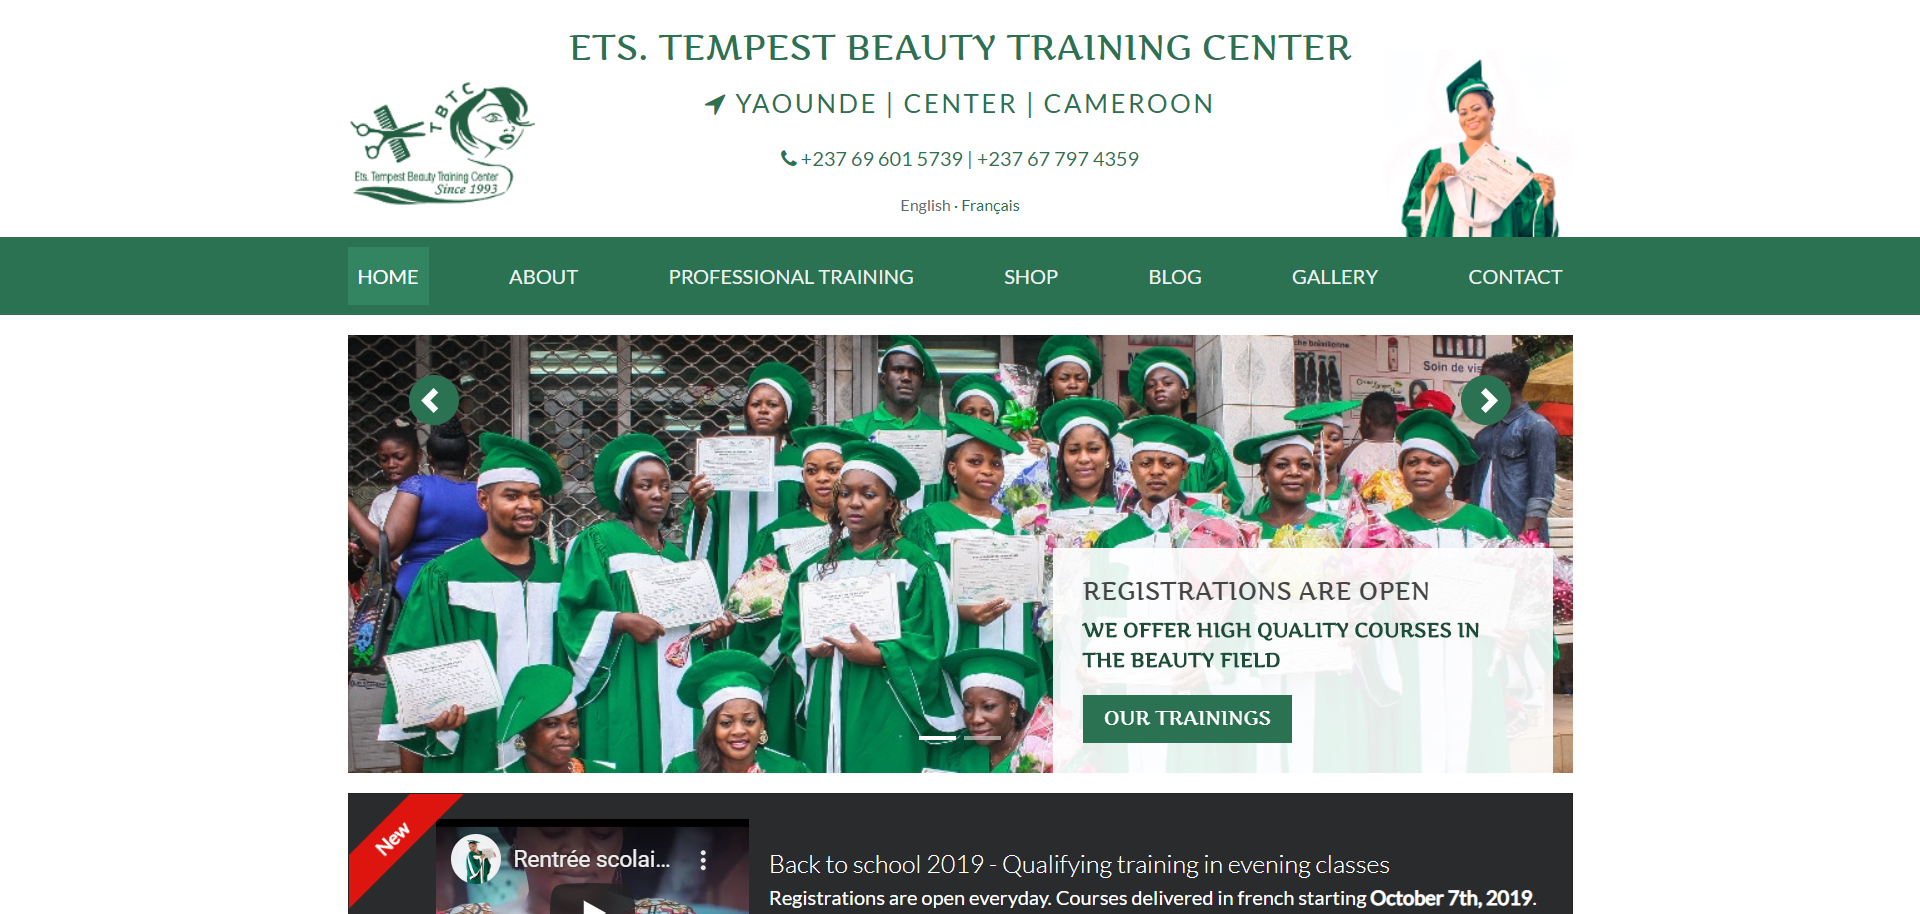 Tempest Beauty Training Center